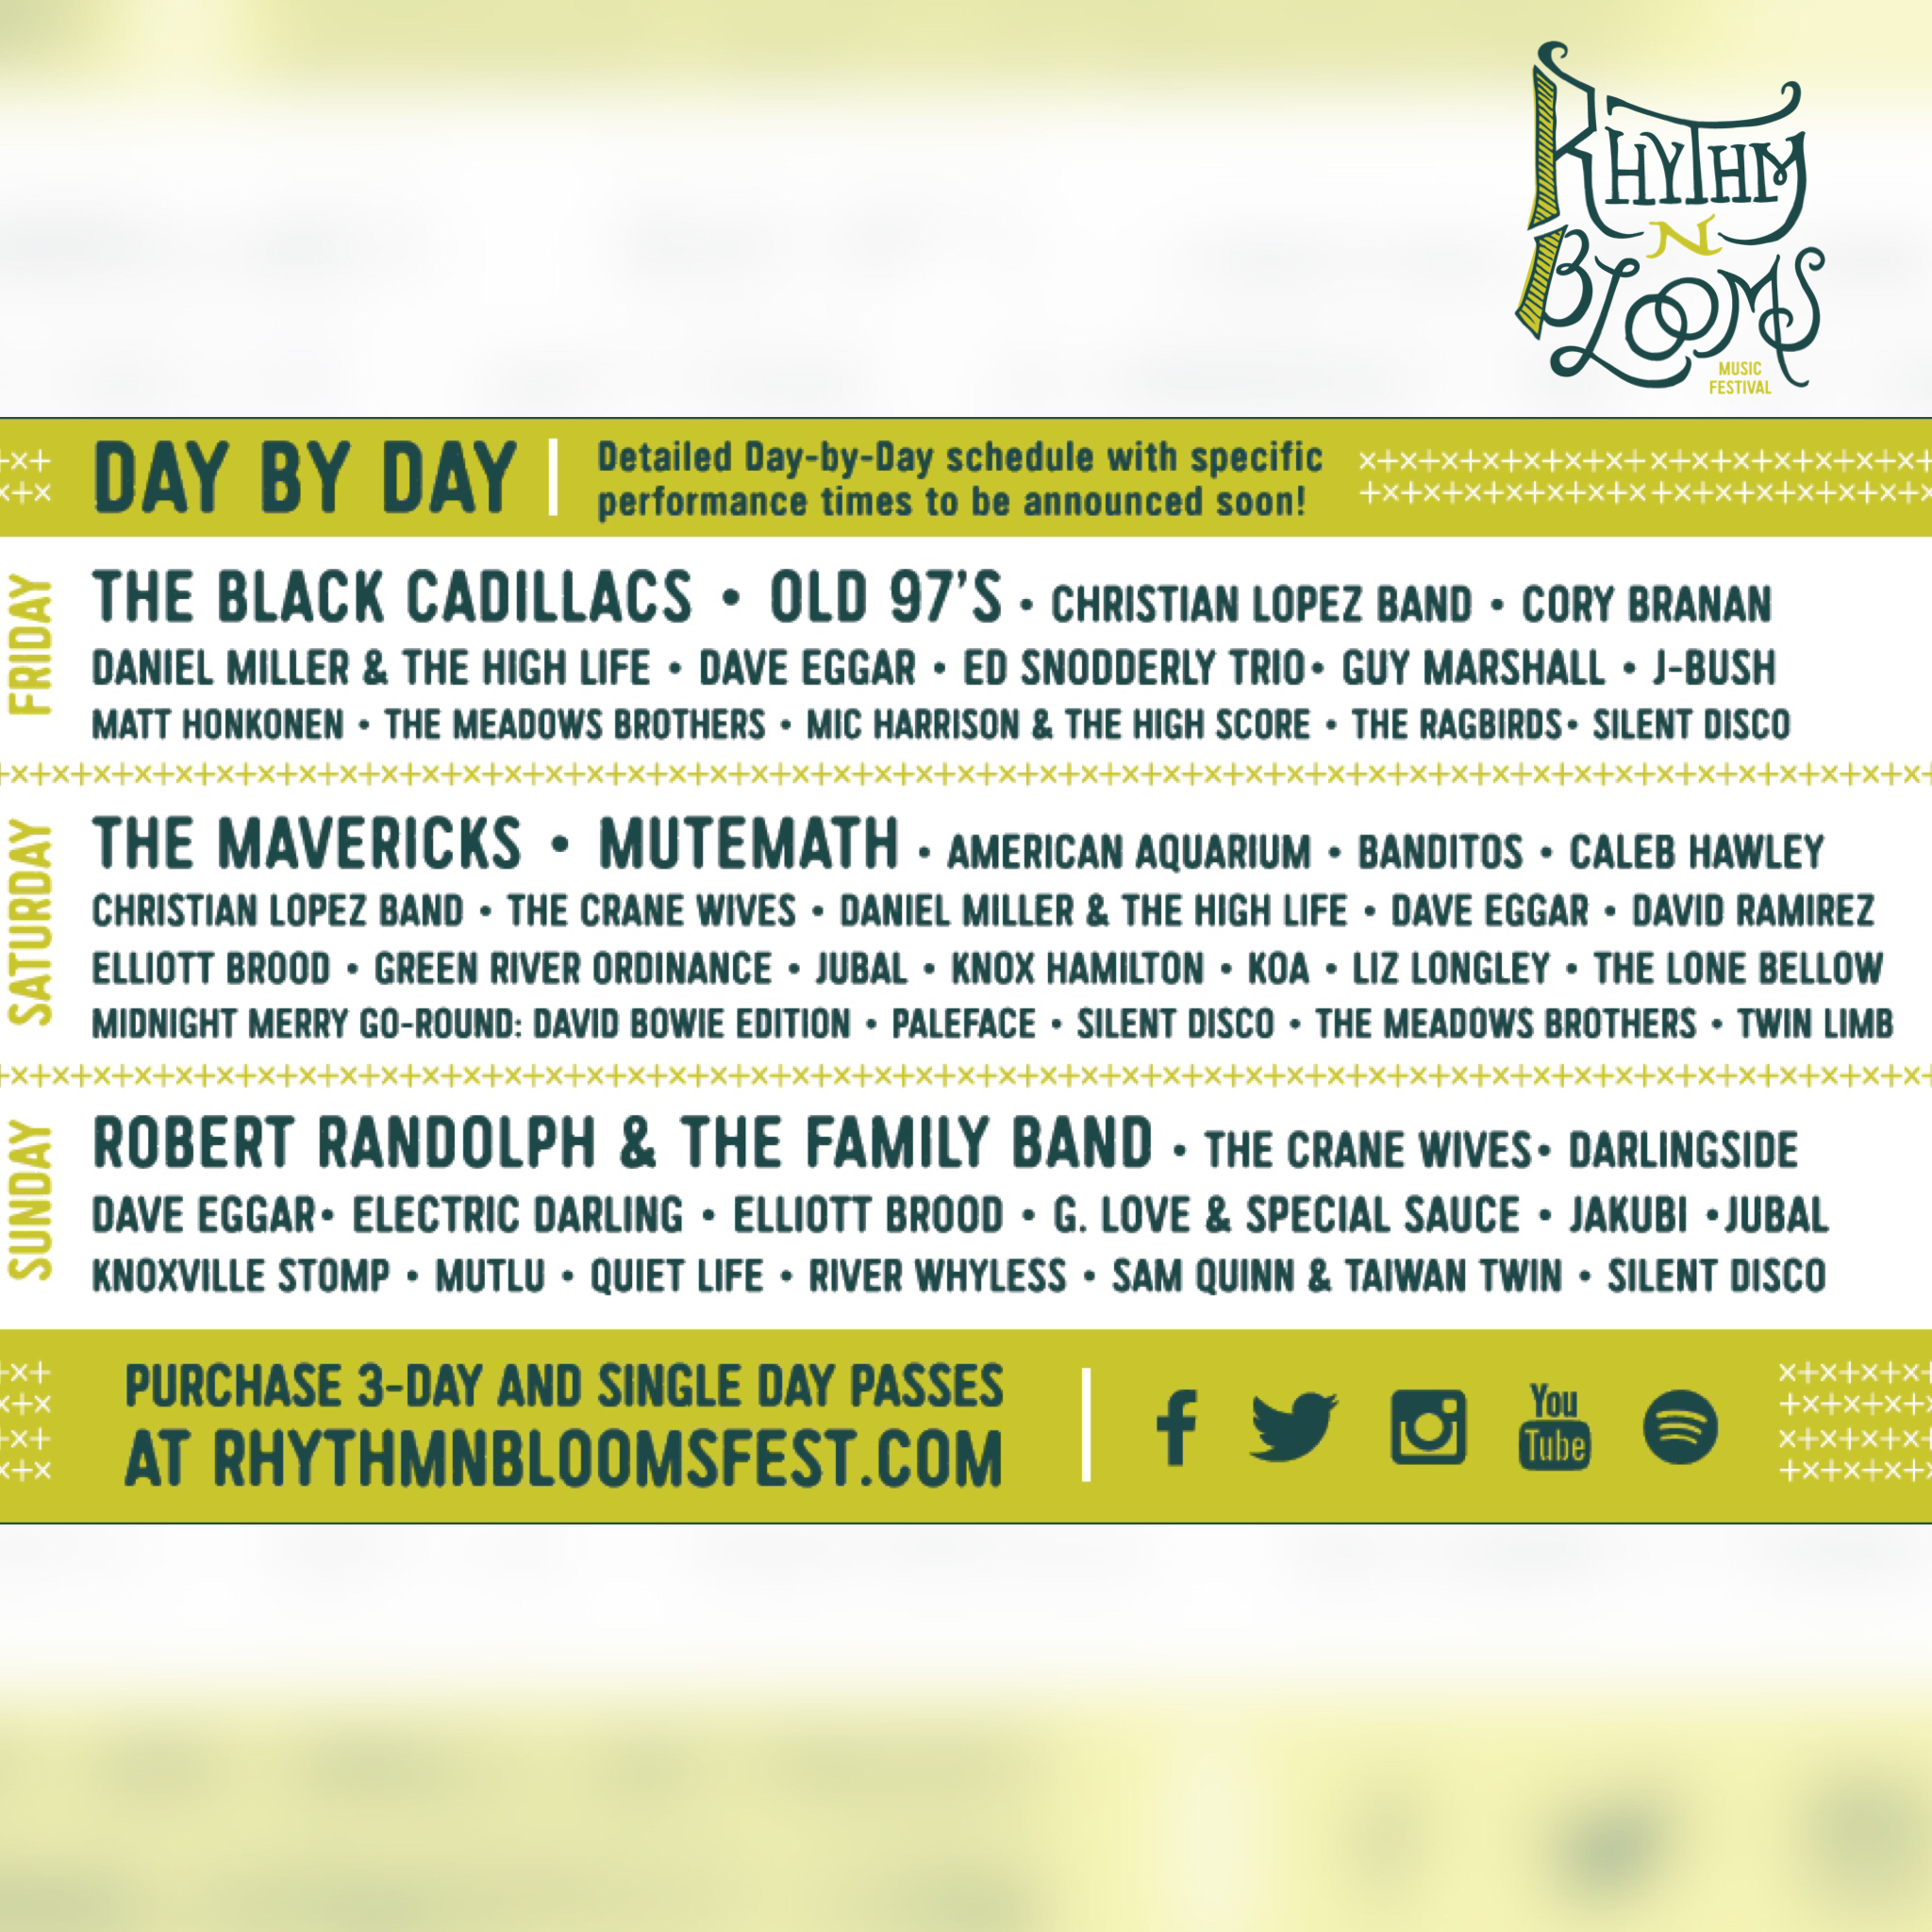 Rhythm N' Blooms Day-by-Day Lineup